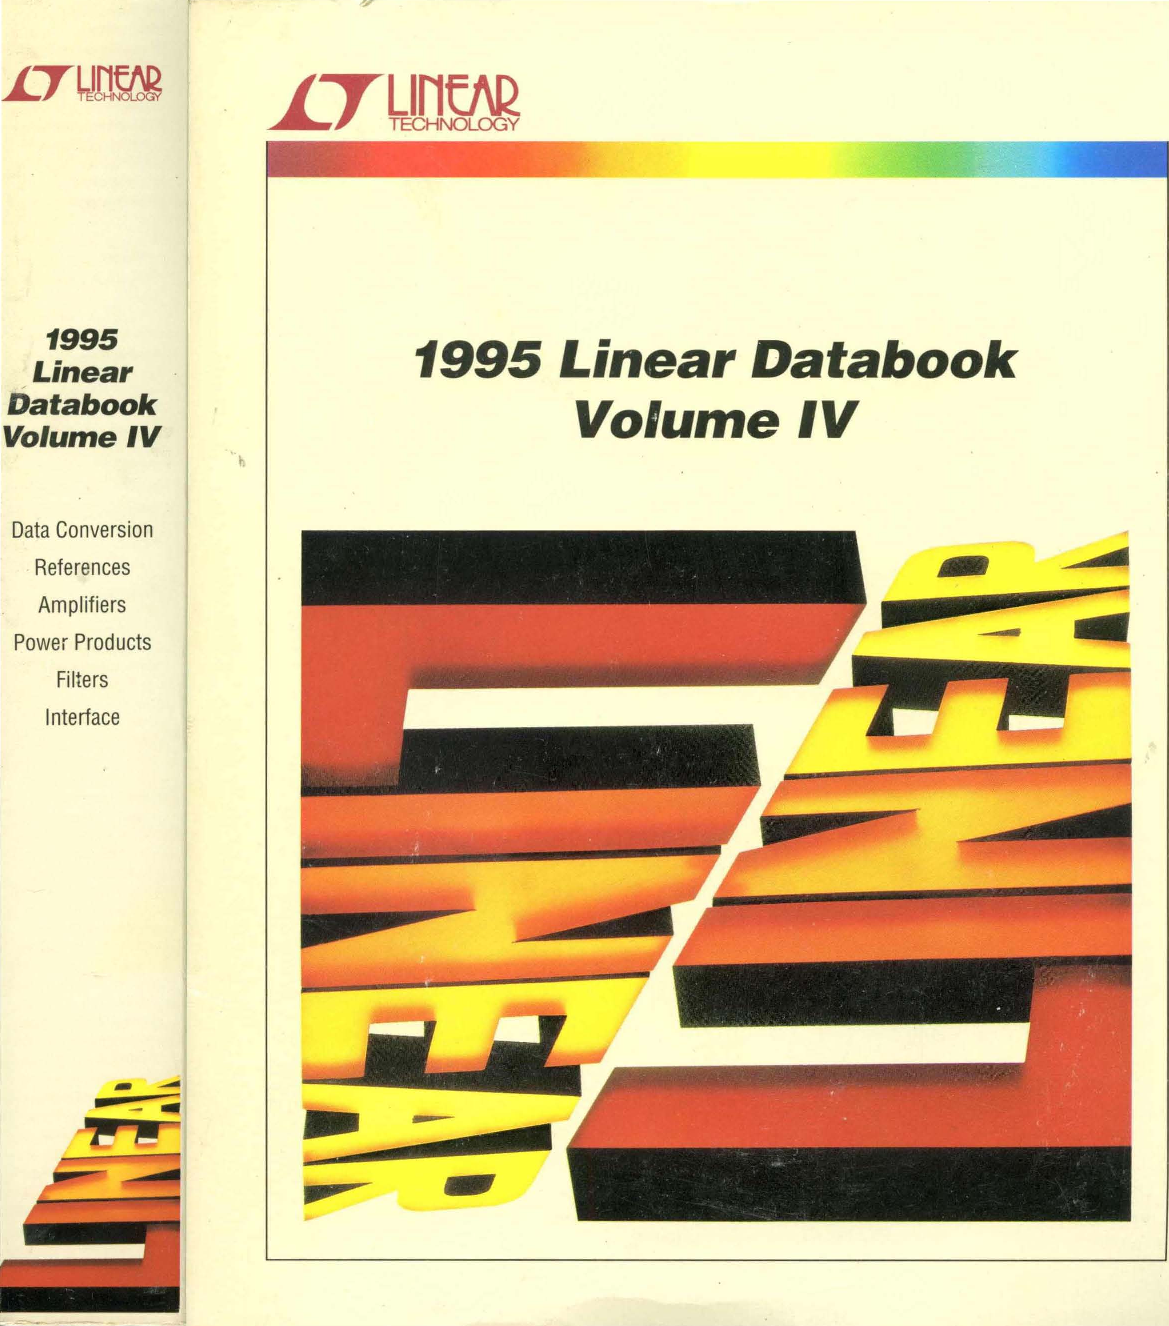 1995 Linear Databook Paralleling Max1044 Devices